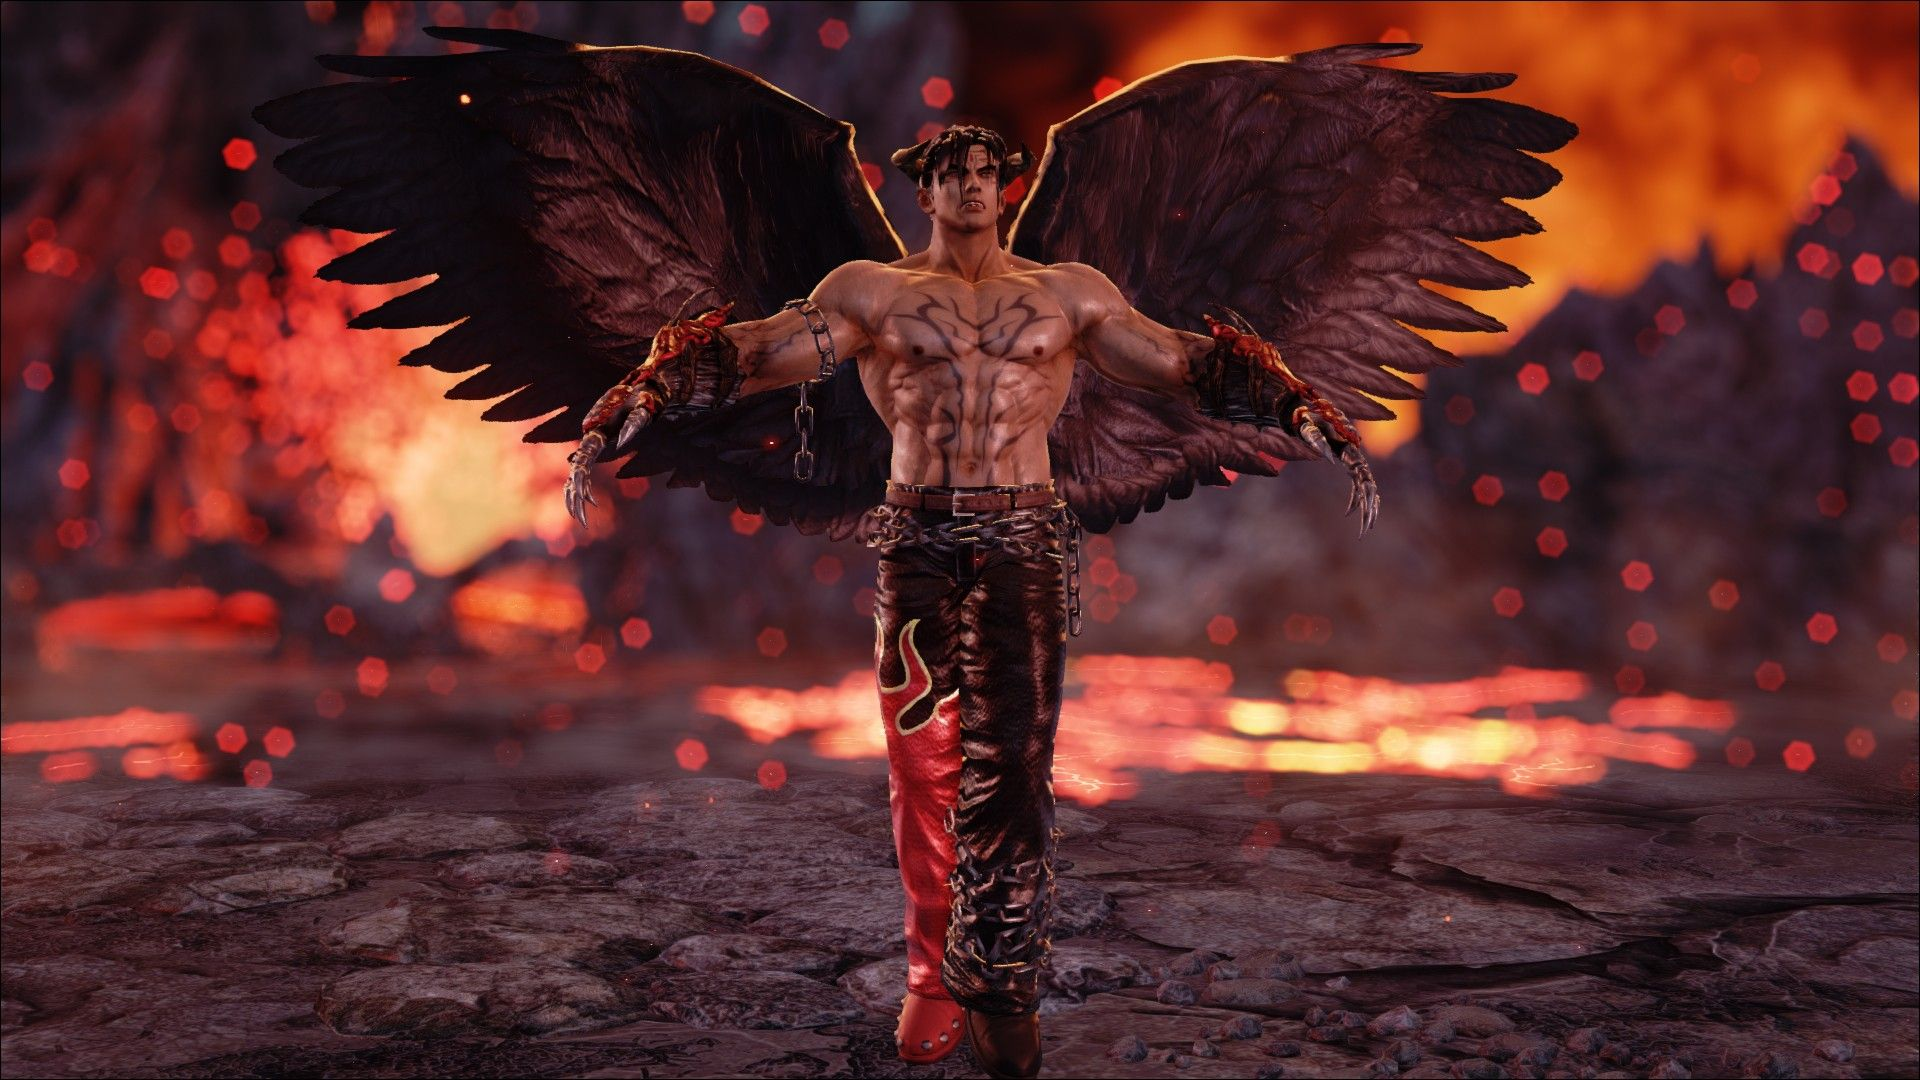 Tekken 7 Wallpapers Free Wallpaper Tekken 7 Xbox Xbox One